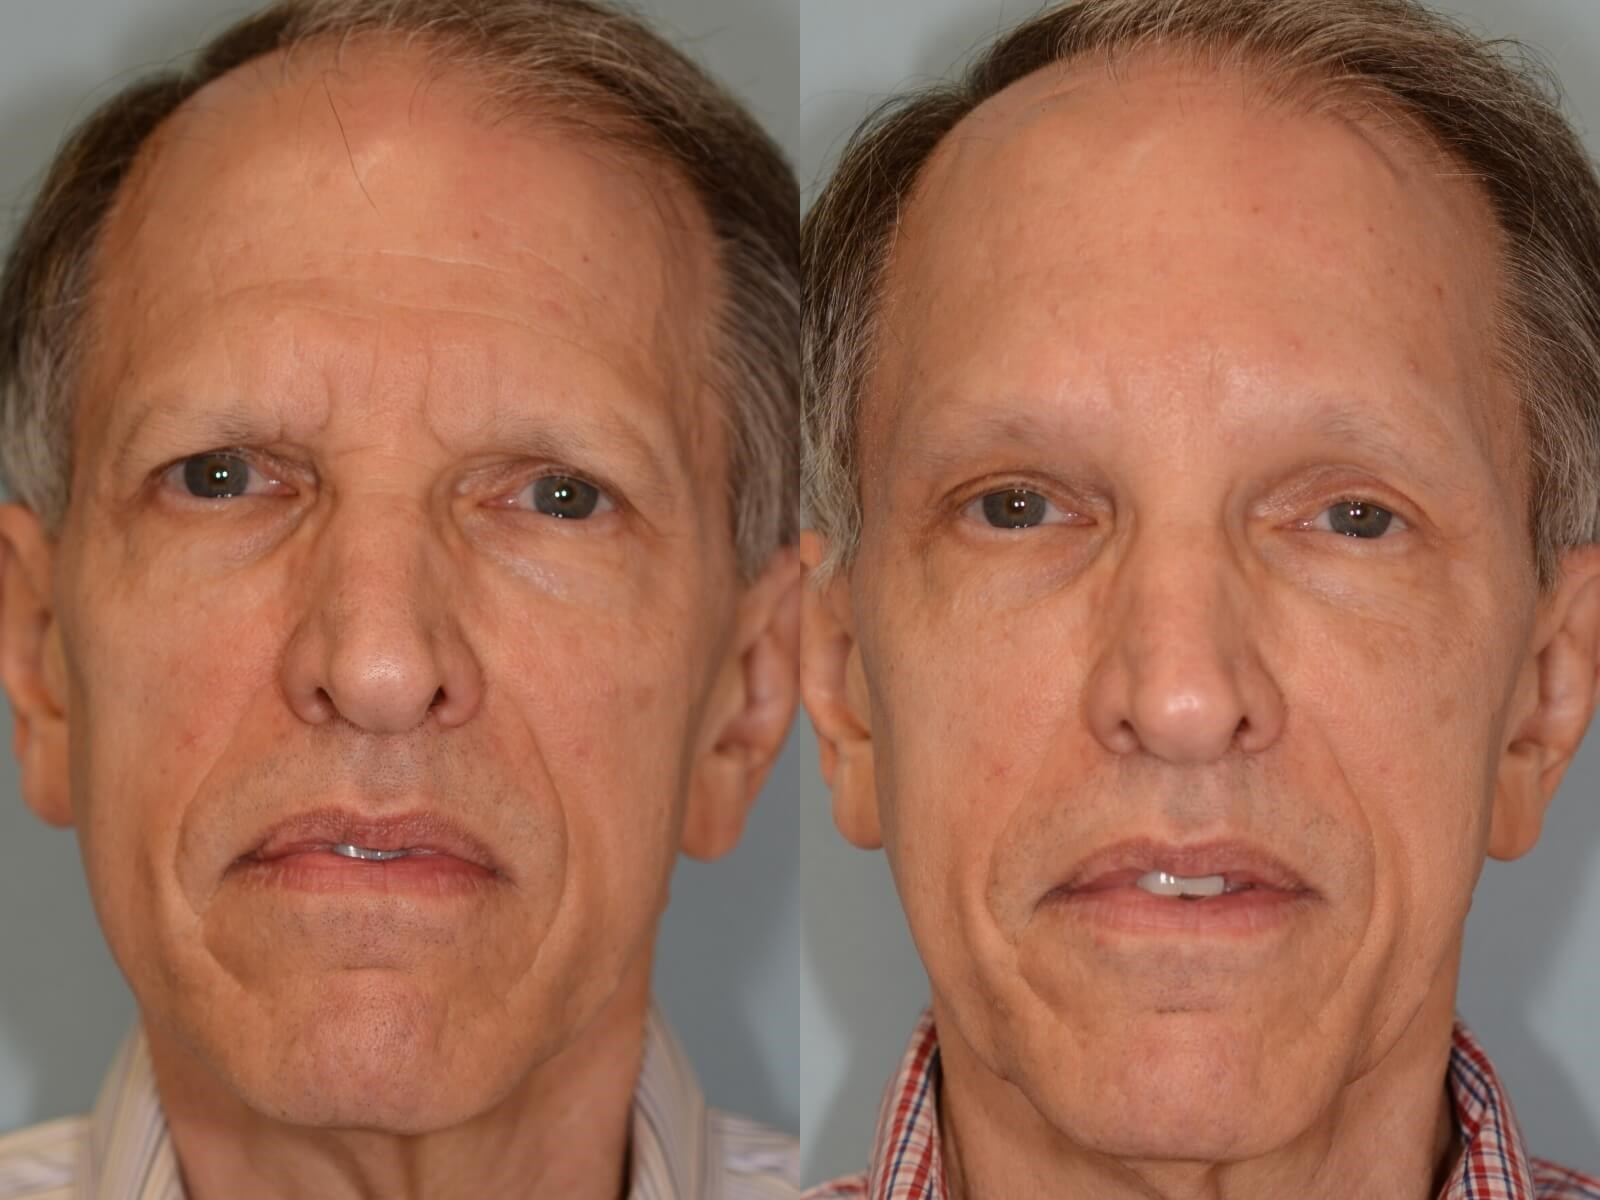 Endoscopic Brow lift Before and After